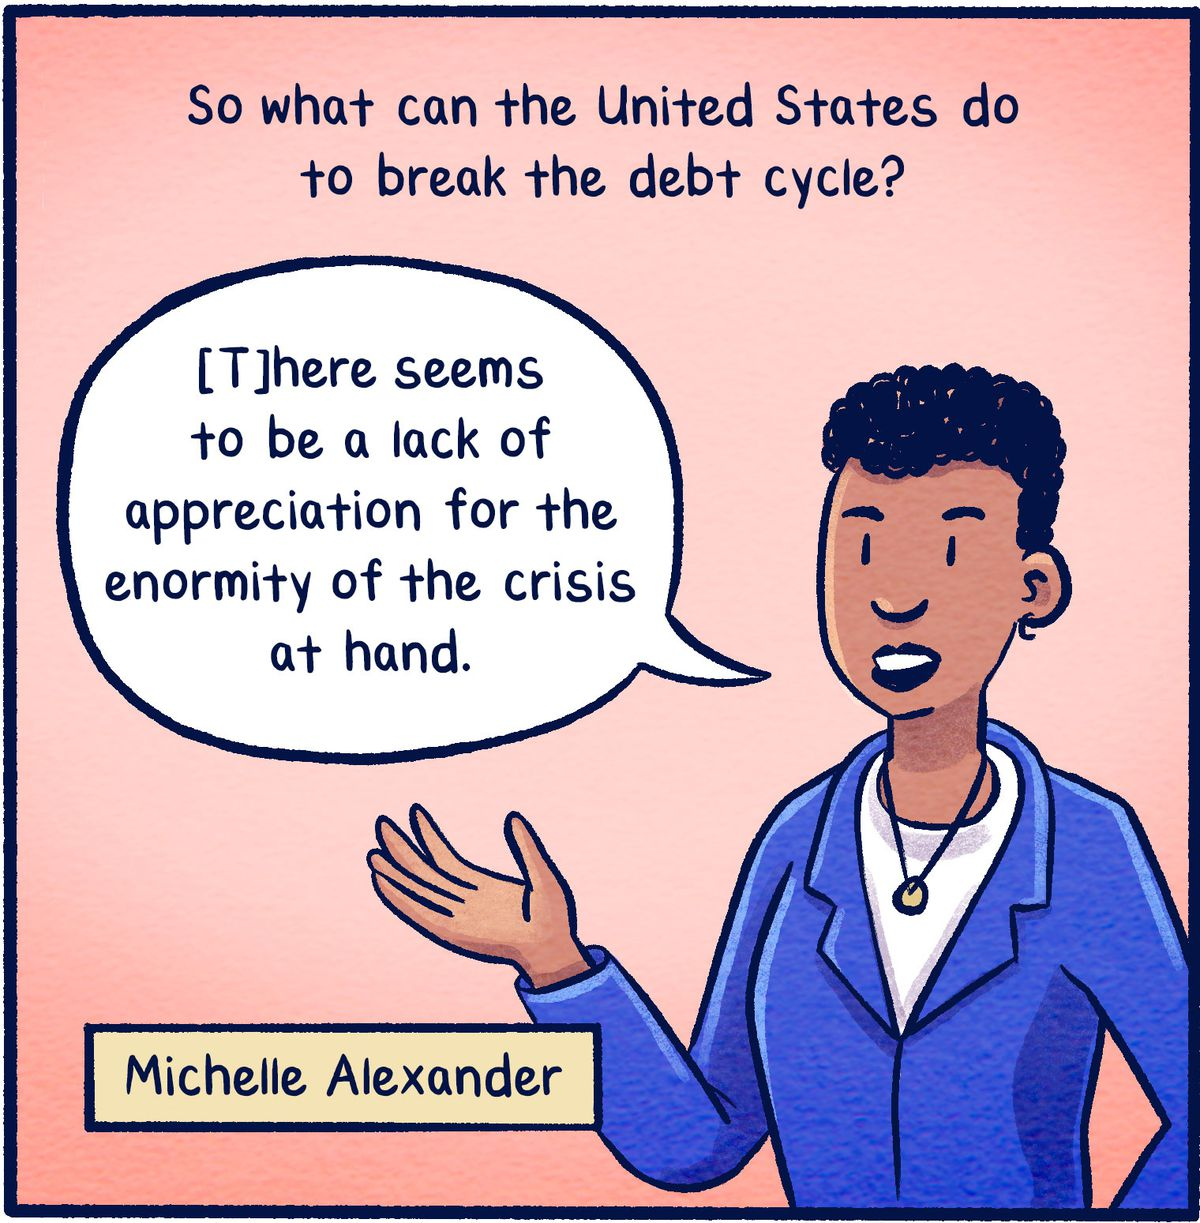 """So what can the United States do to break the debt cycle? """"[T]here seems to be a lack of appreciation for the enormity of the crisis at hand."""" -Michelle Alexander"""